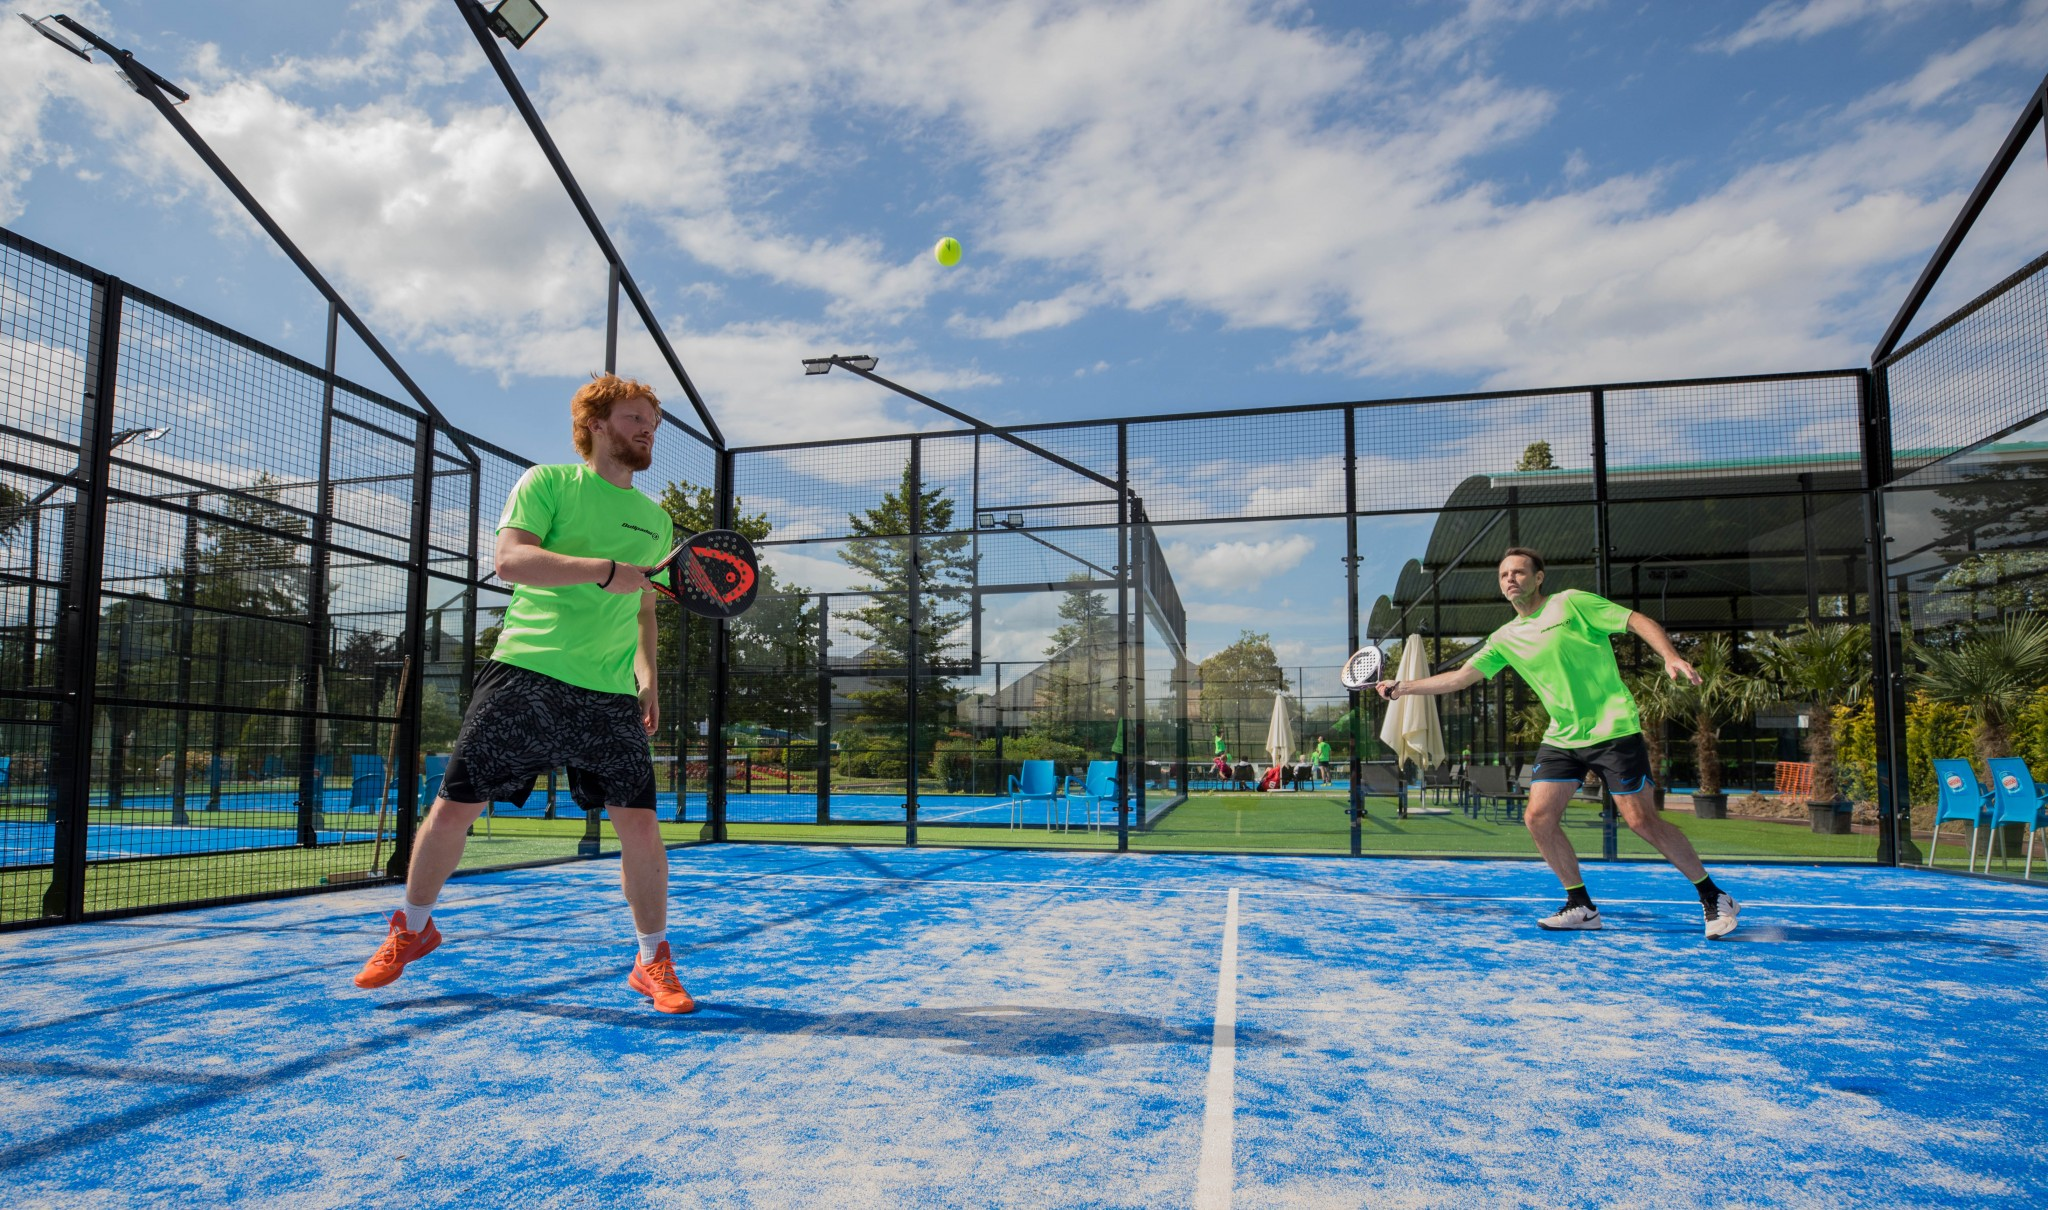 Comment appelle-t-on un joueur de padel ?